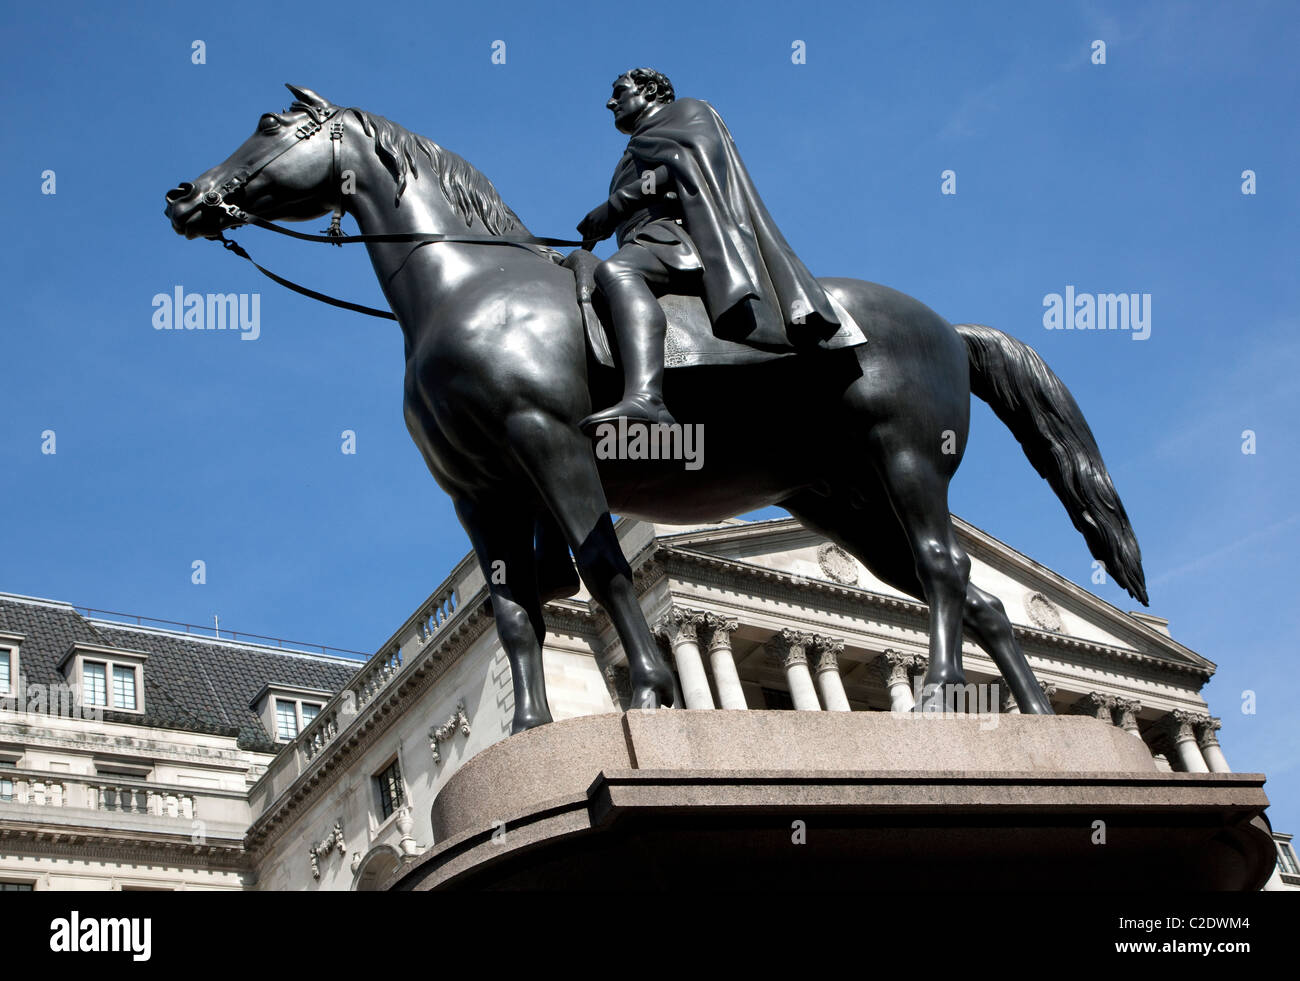 Statue of Duke of Wellington in front of Bank of England, City of London - Stock Image